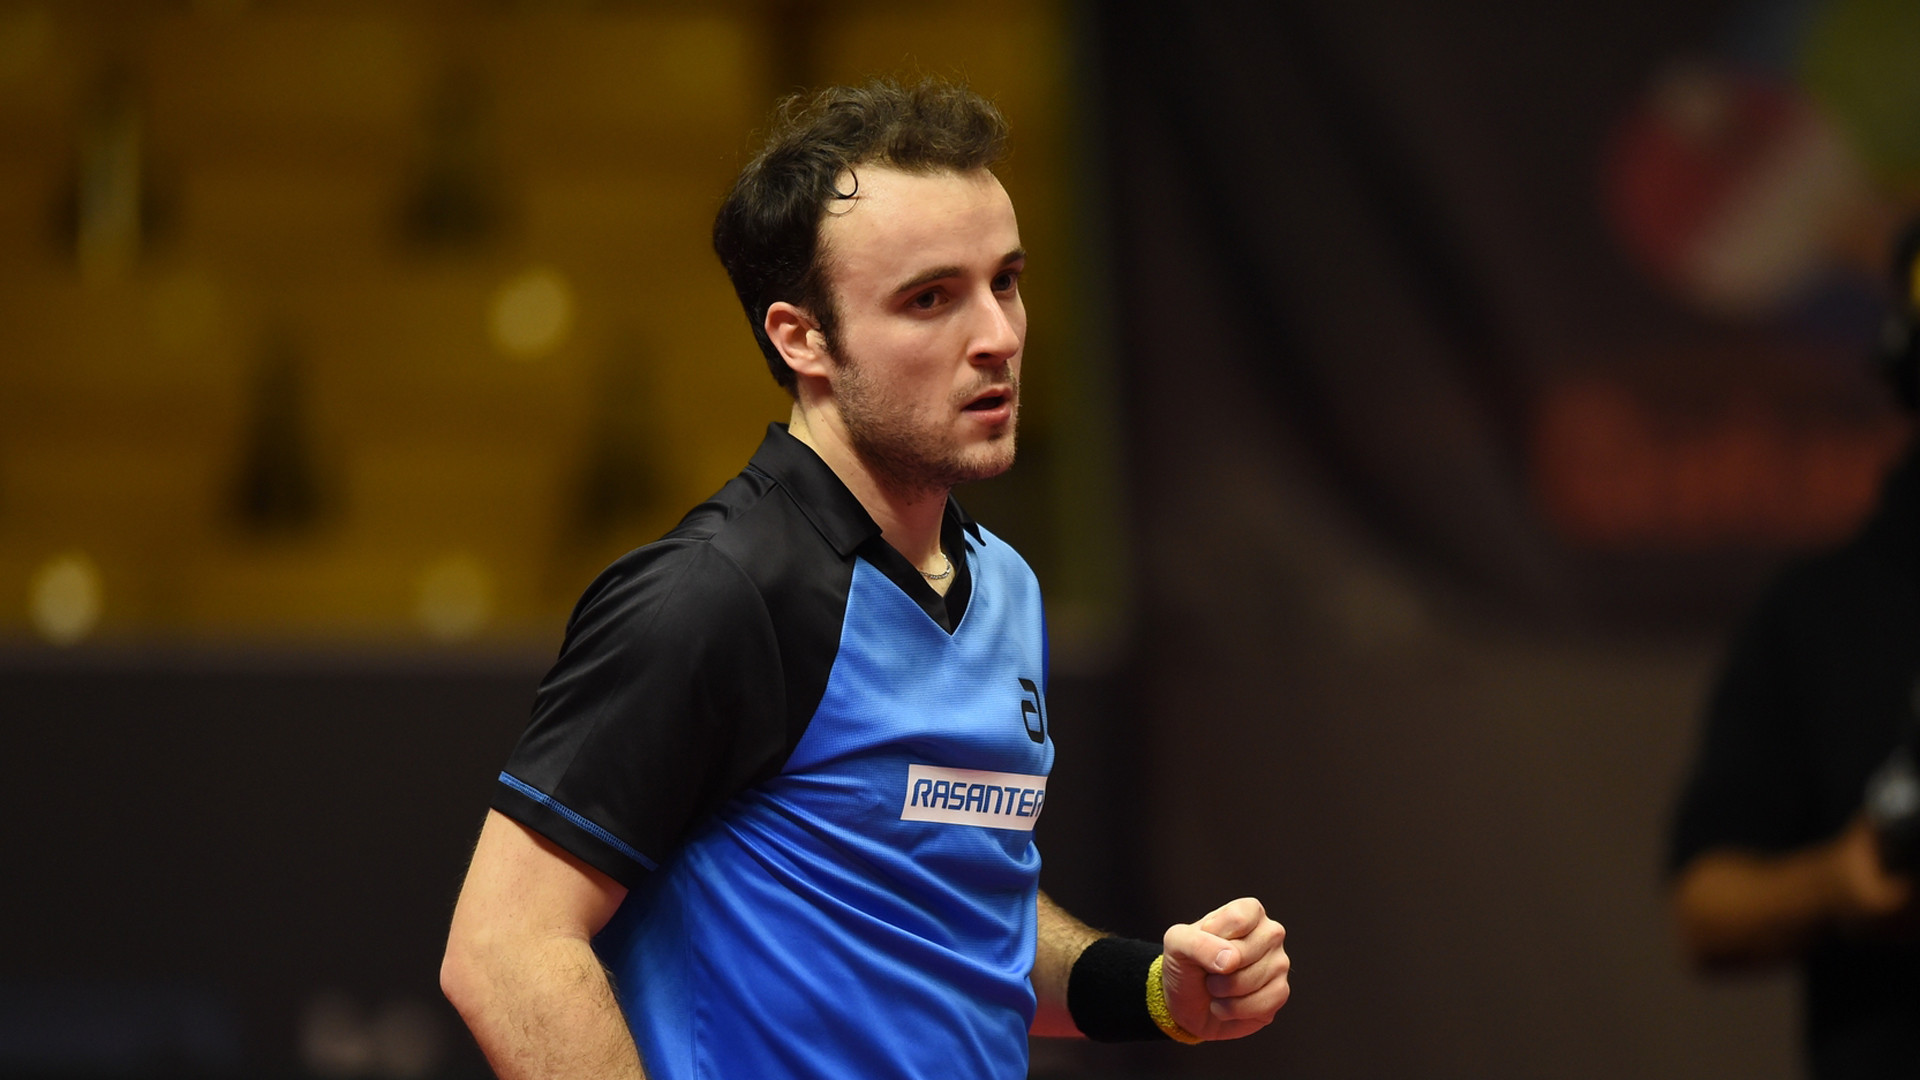 France's Simon Gauzy pushed China's world number one Xu Xin to a seventh game before losing his men's singles quarter-final today at the Qatar Open in Doha ©ITTF